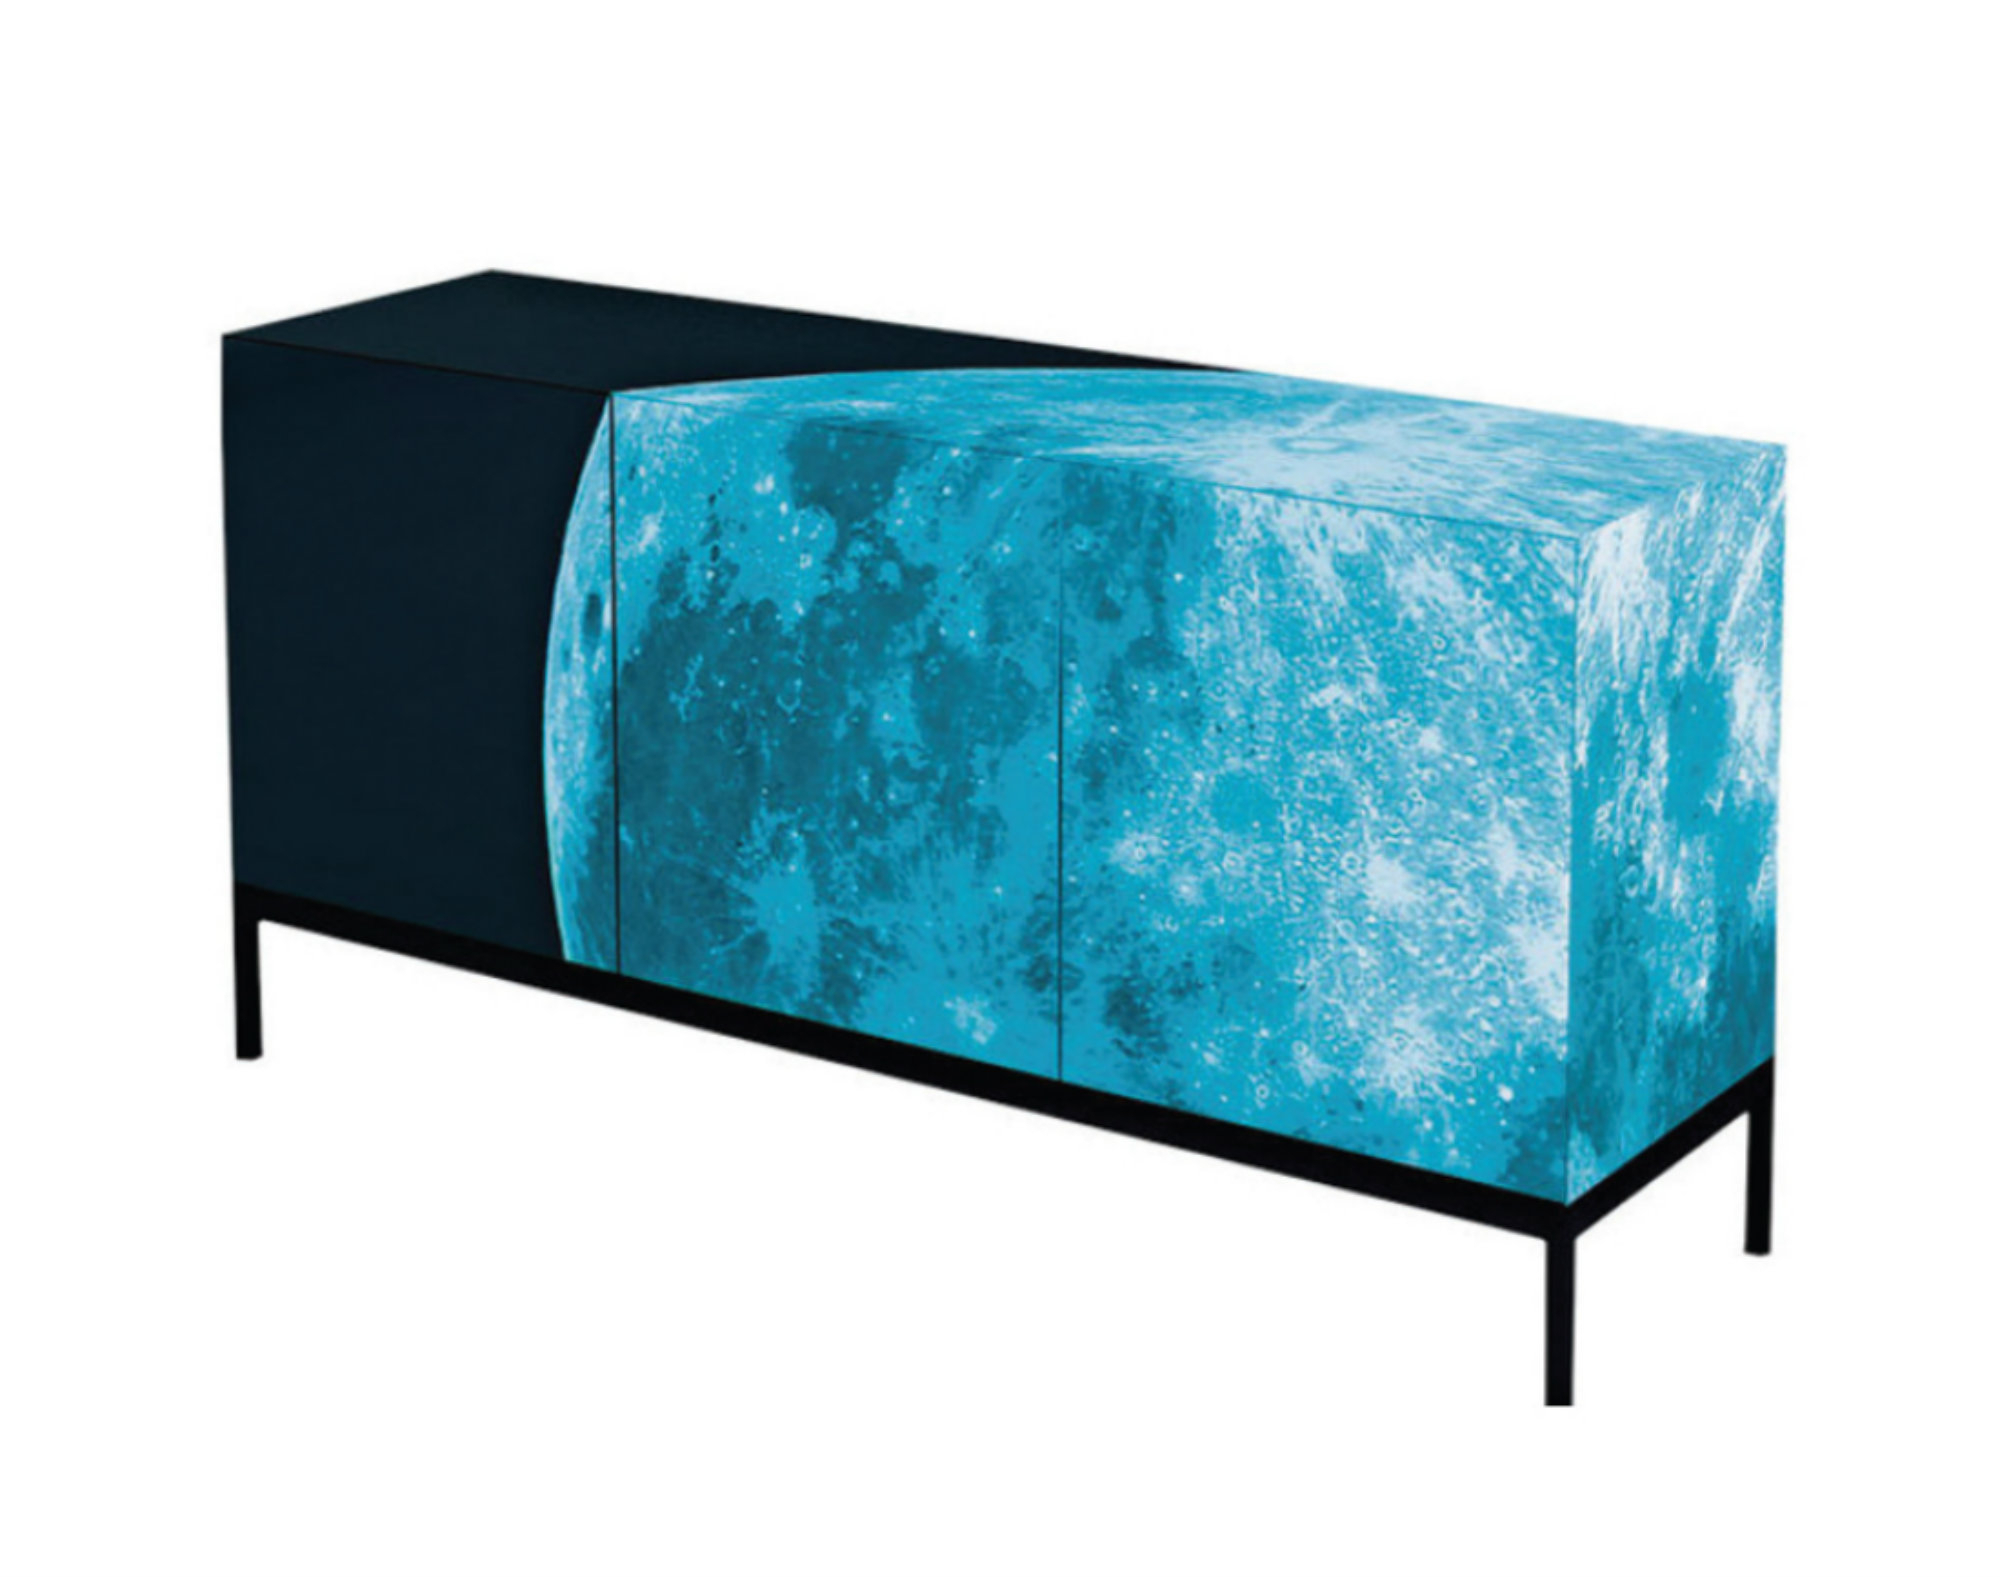 Full Moon Limited Edition Sideboard Designedsotirios With Regard To Papadopoulos Sideboards (View 20 of 20)